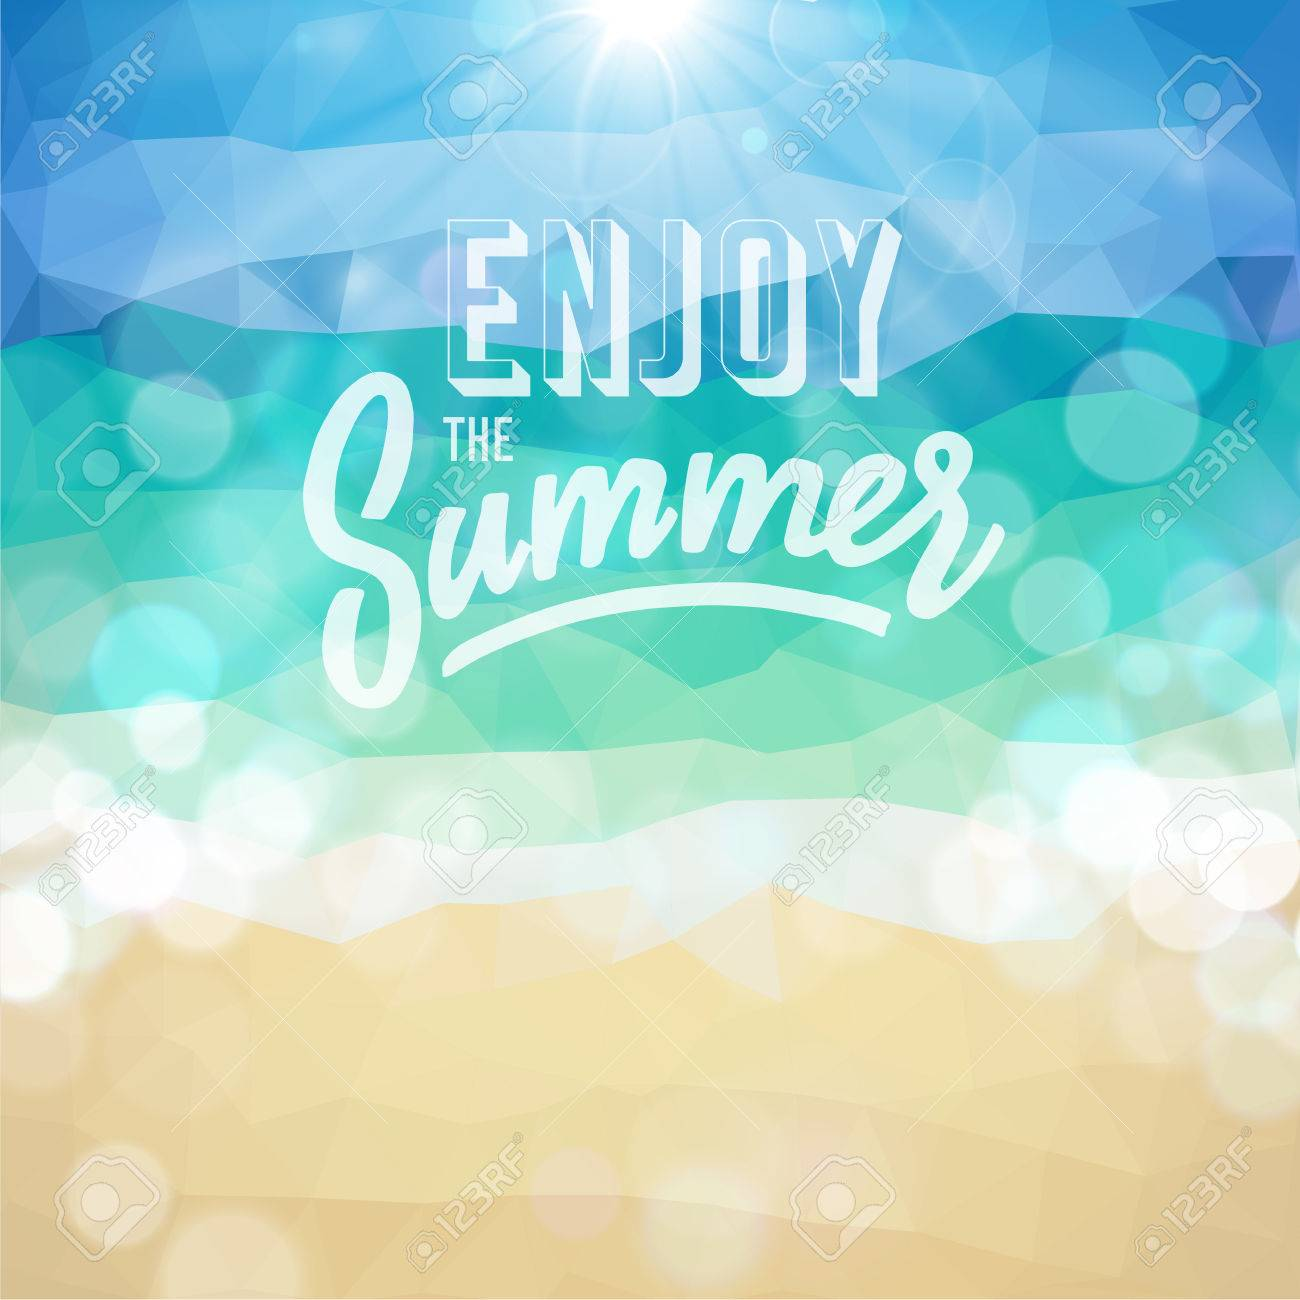 Enjoy the summer Poster on tropical beach background - 29232194